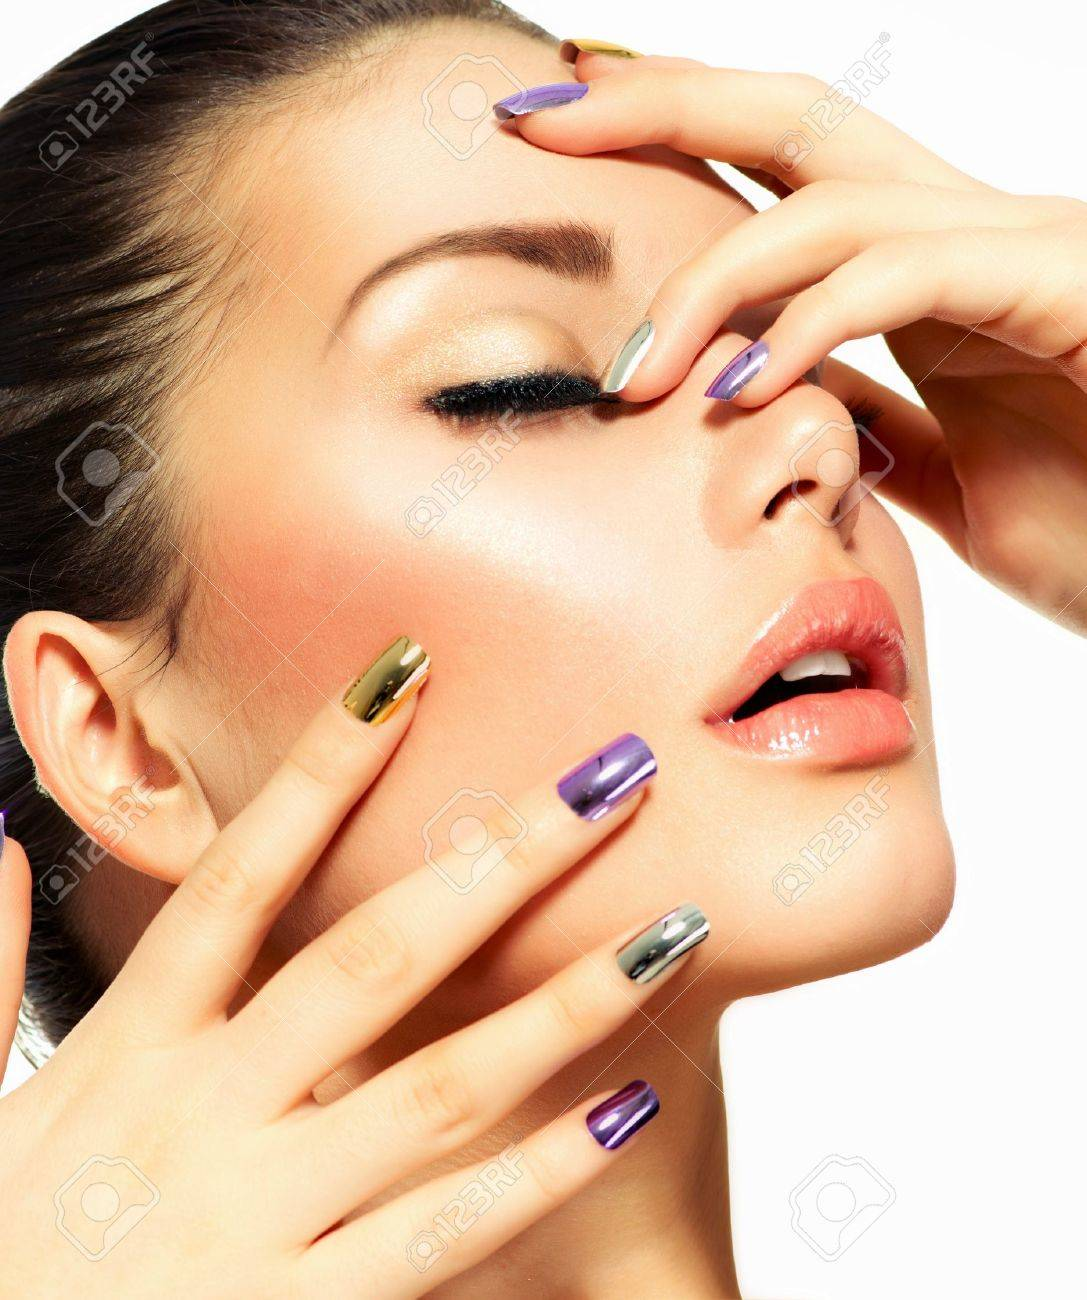 Beautiful Fashion Girl s Face  Make-up and Manicure Stock Photo - 19147280